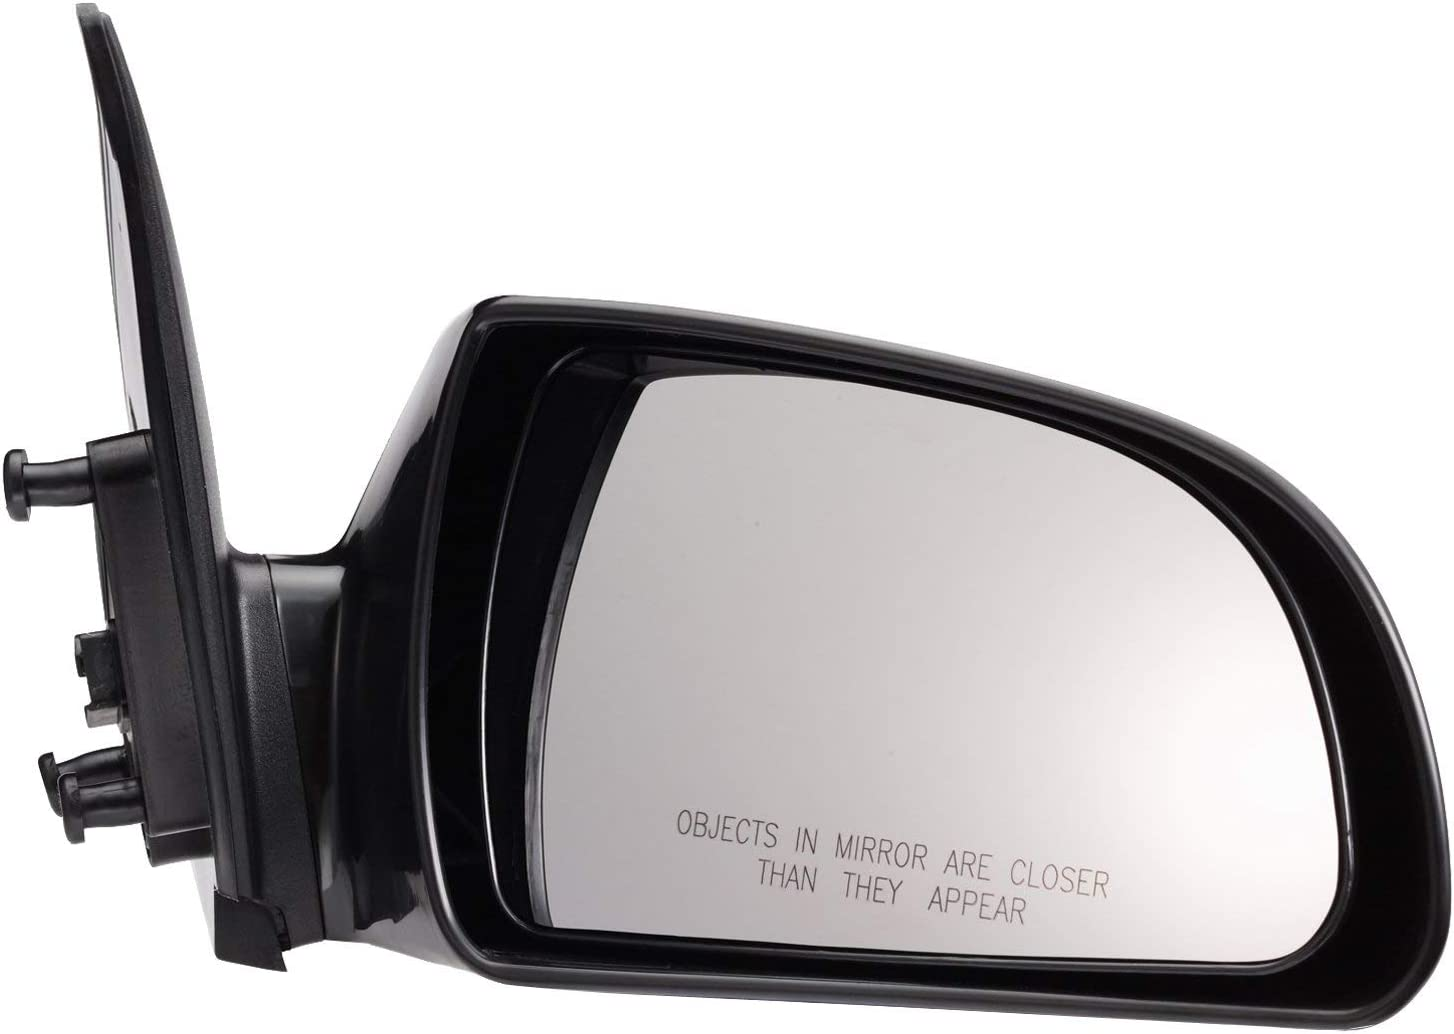 HY1321149 Roane Concepts Replacement Right Passenger Side Door Mirror Black for 2006-2010 Hyundai Sonata Power Non-Heated